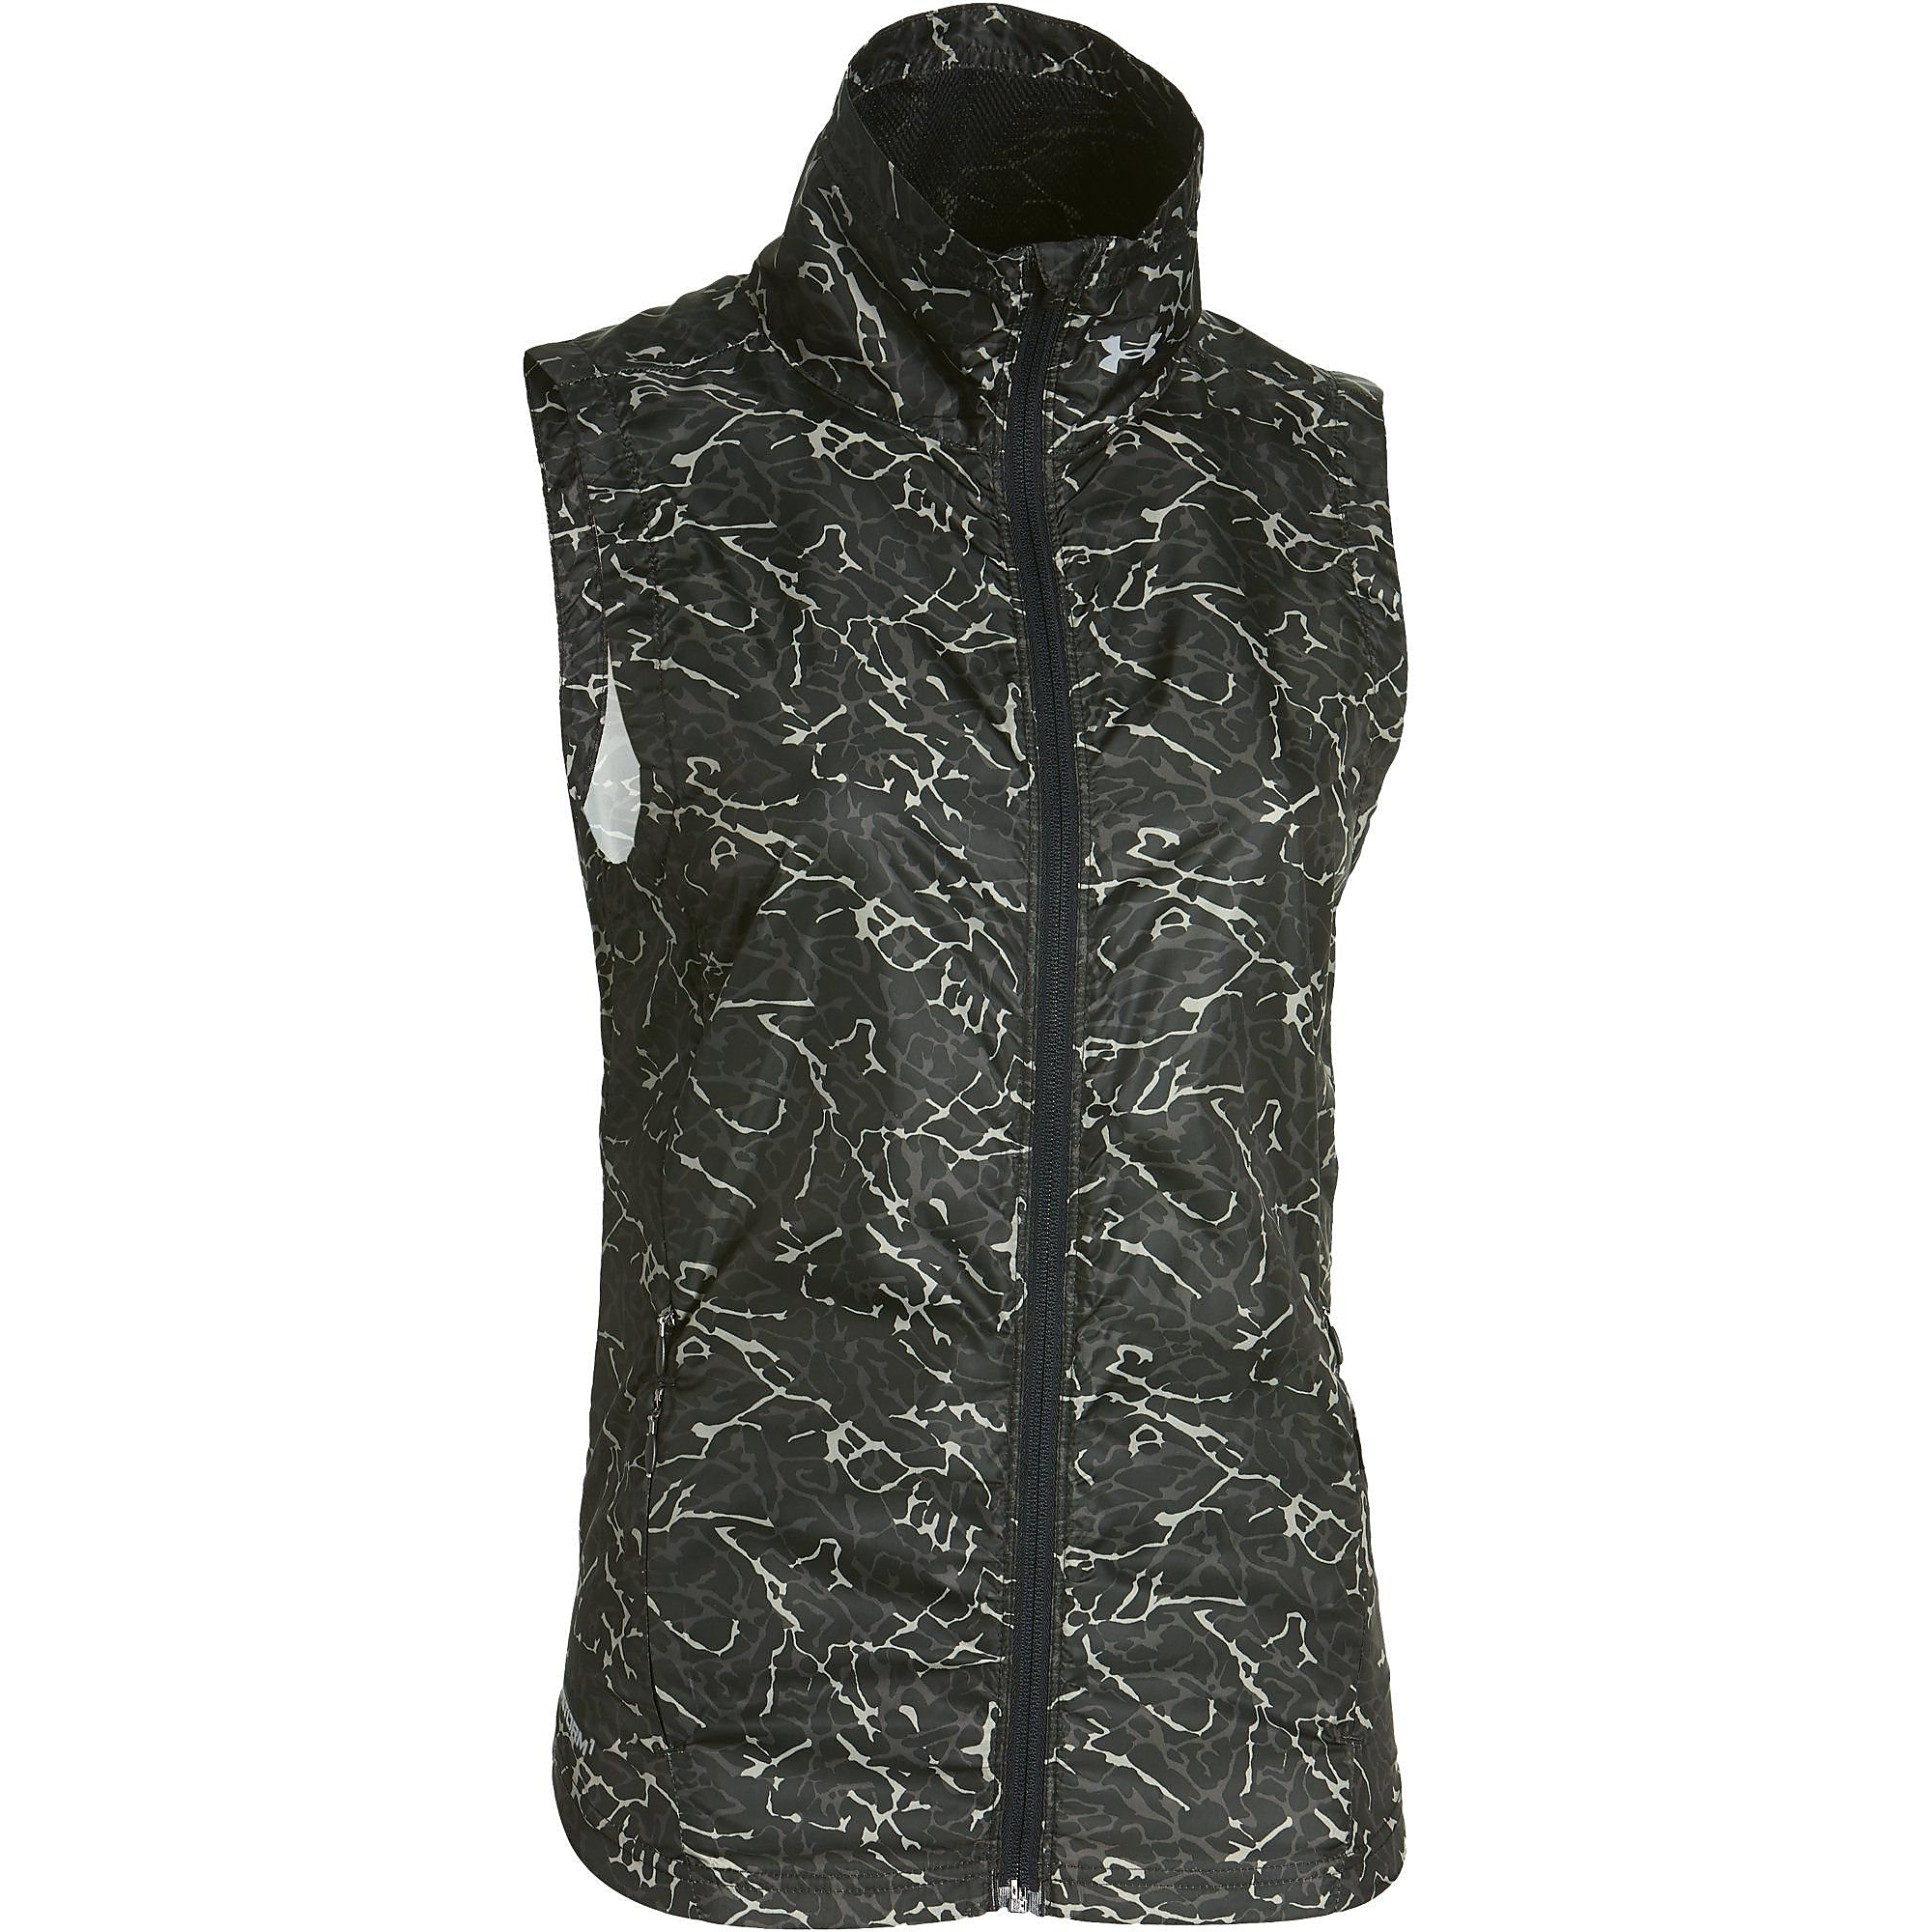 UNDER ARMOUR PRINT LAYERED UP STORM VE